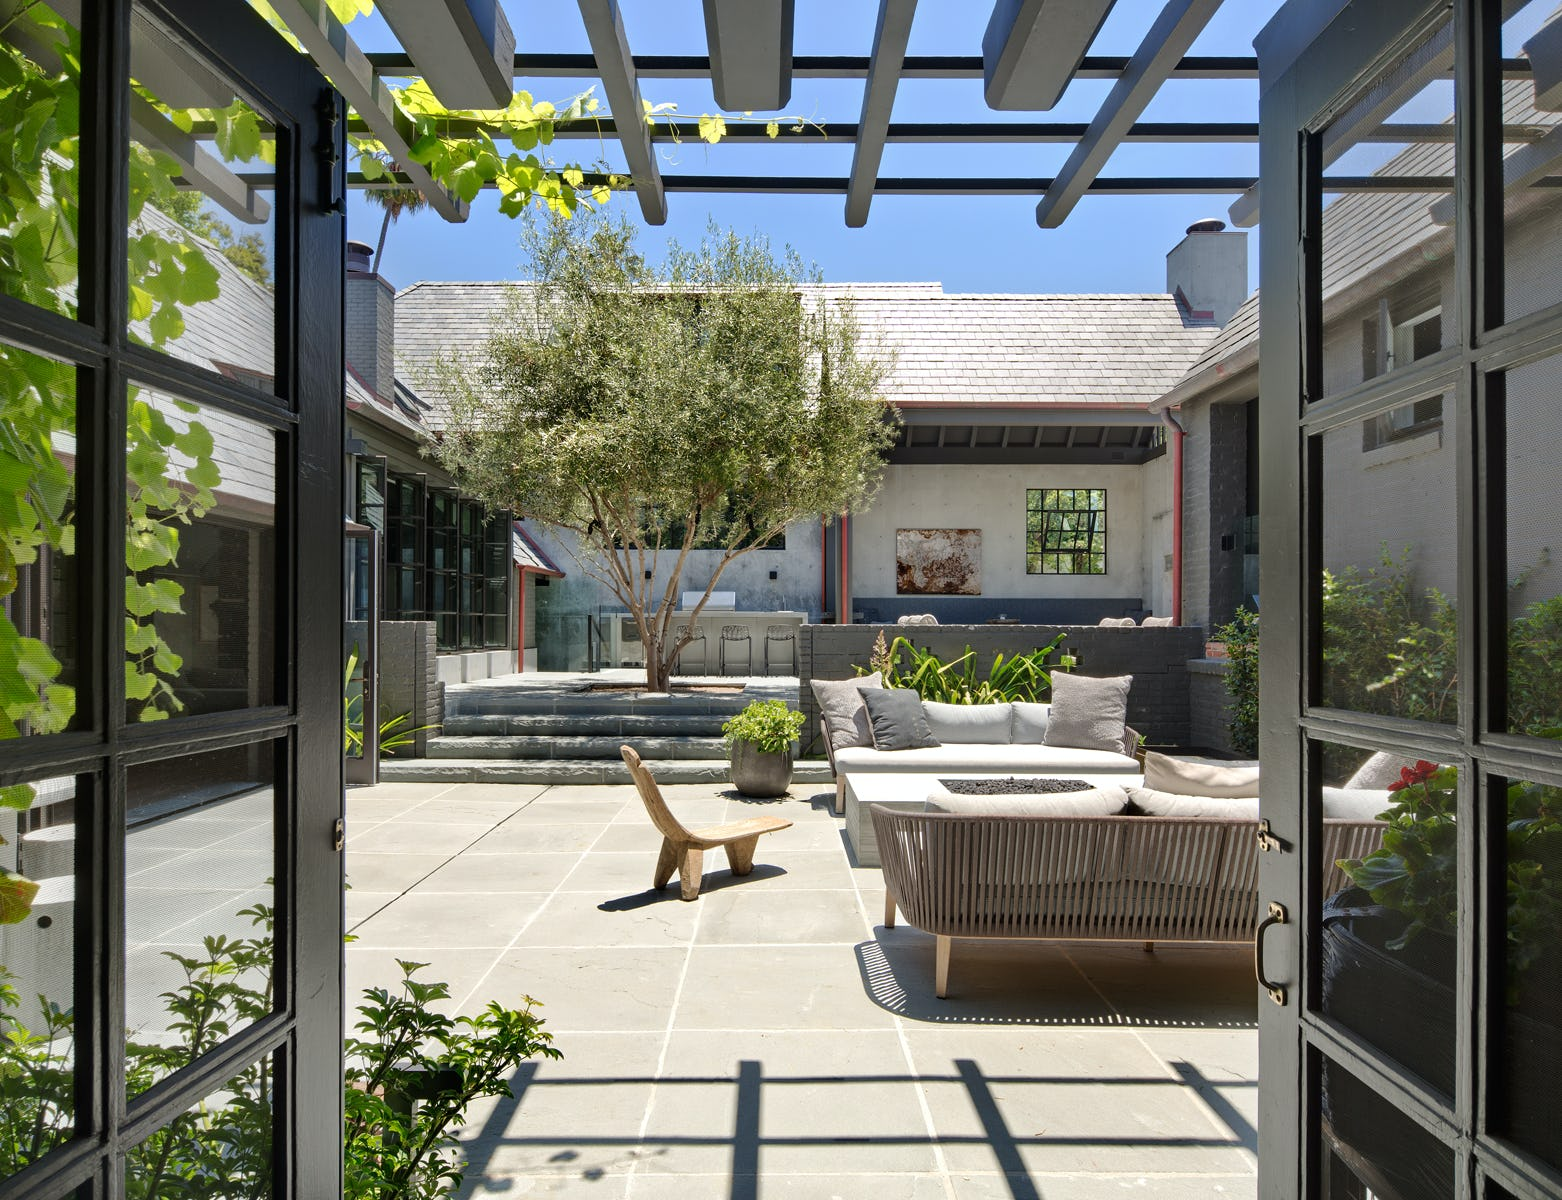 Jb square from dining to patio w trellis